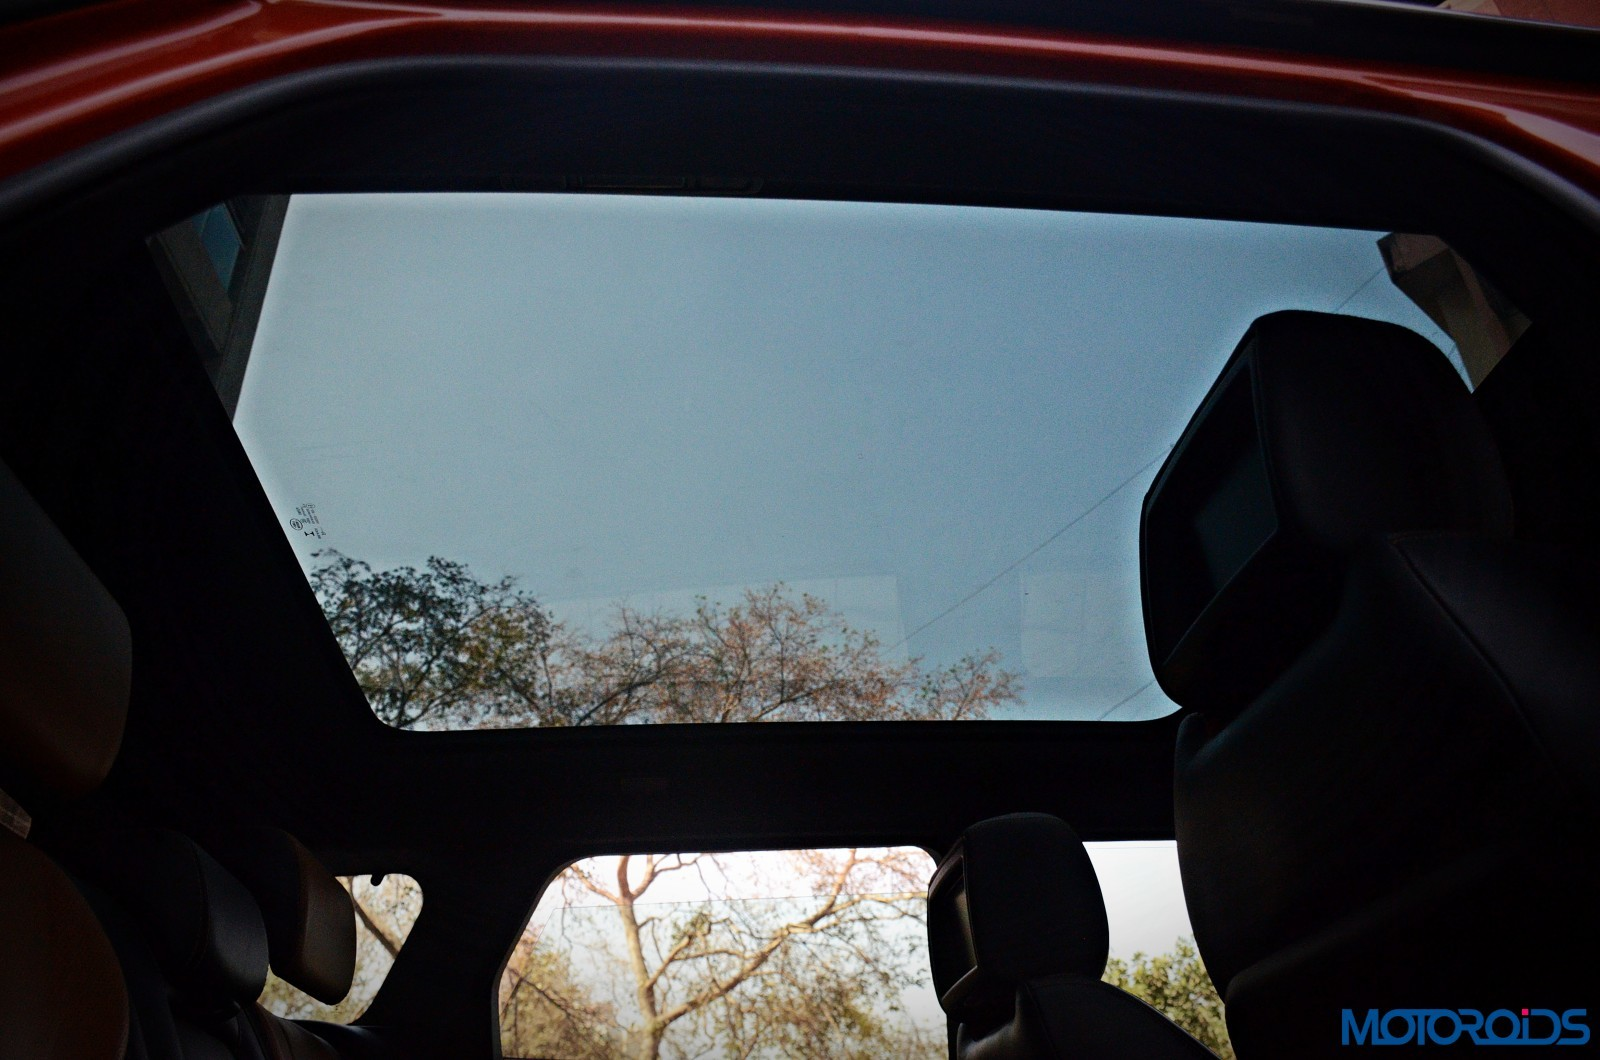 Range-Rover-Evoque-panoramic-sunroof